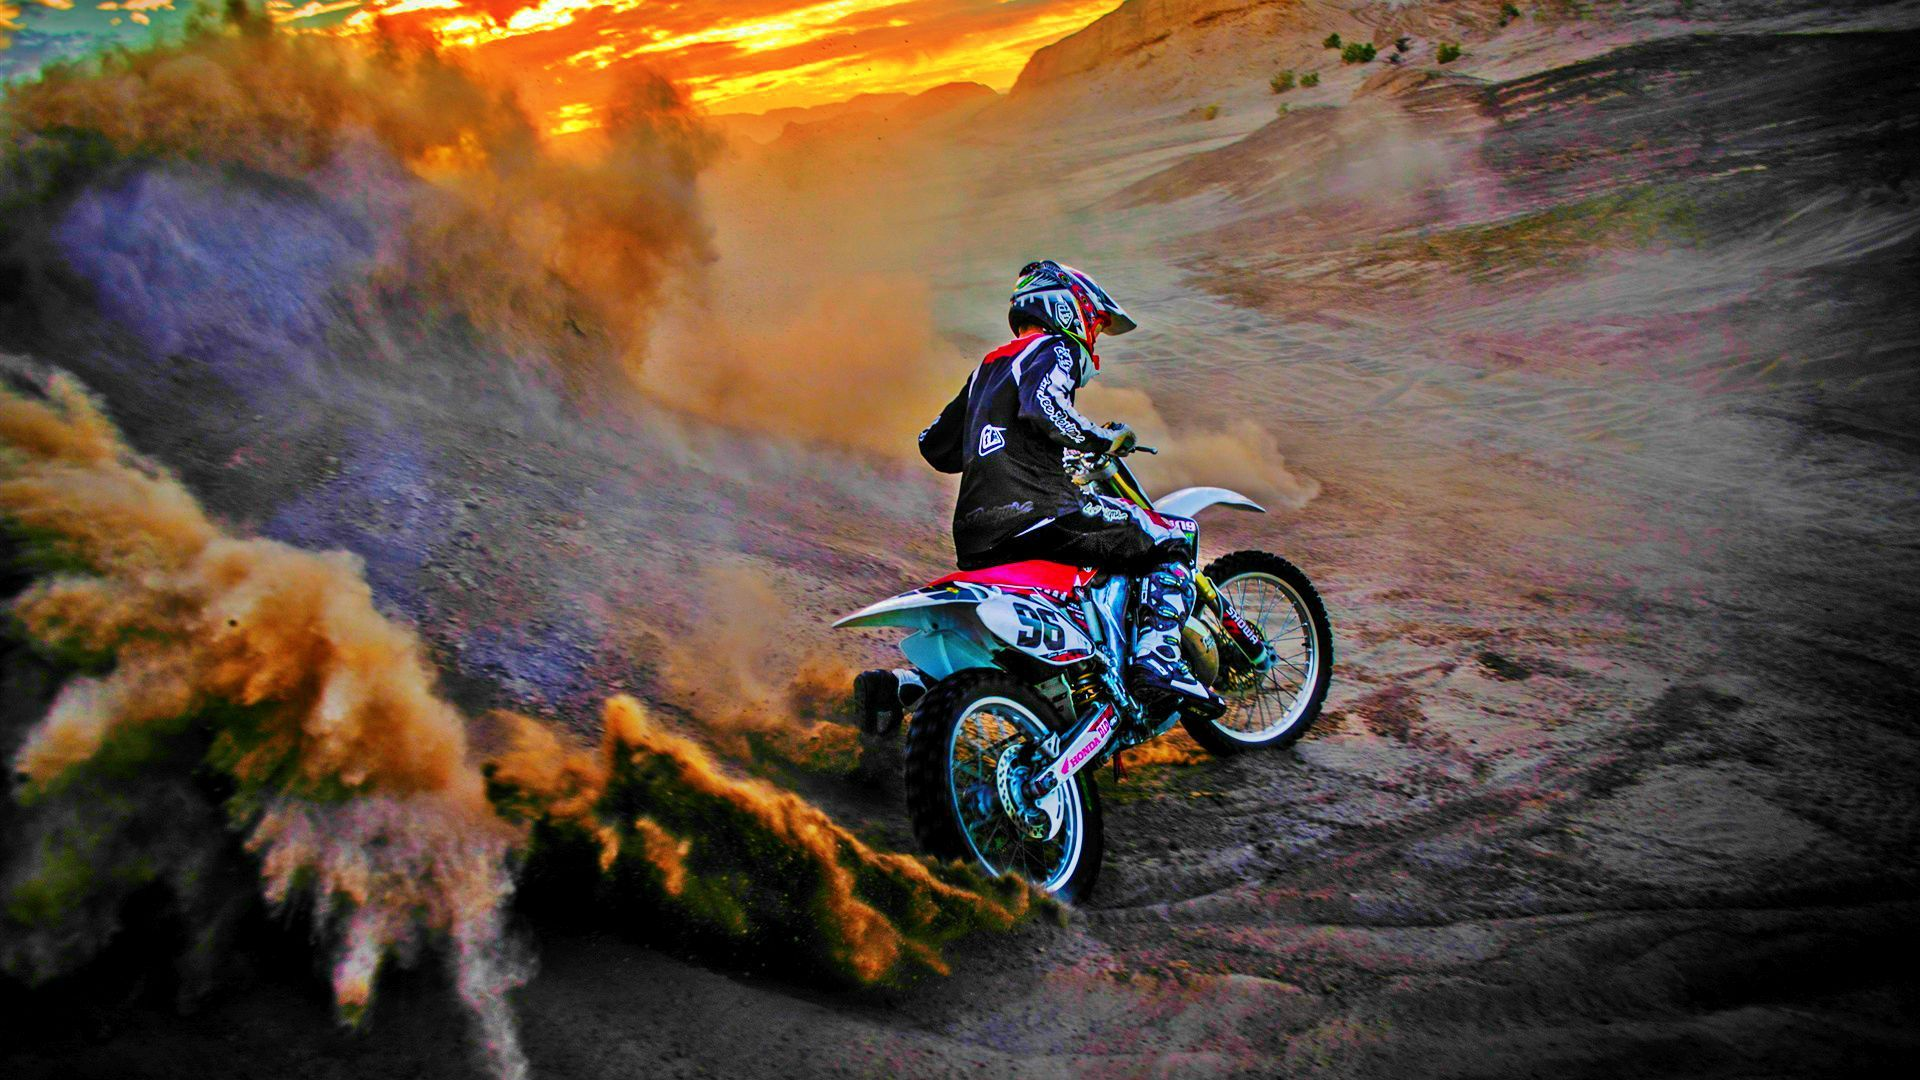 Freestyle Motocross Extreme. See the complete BuzzTrakr